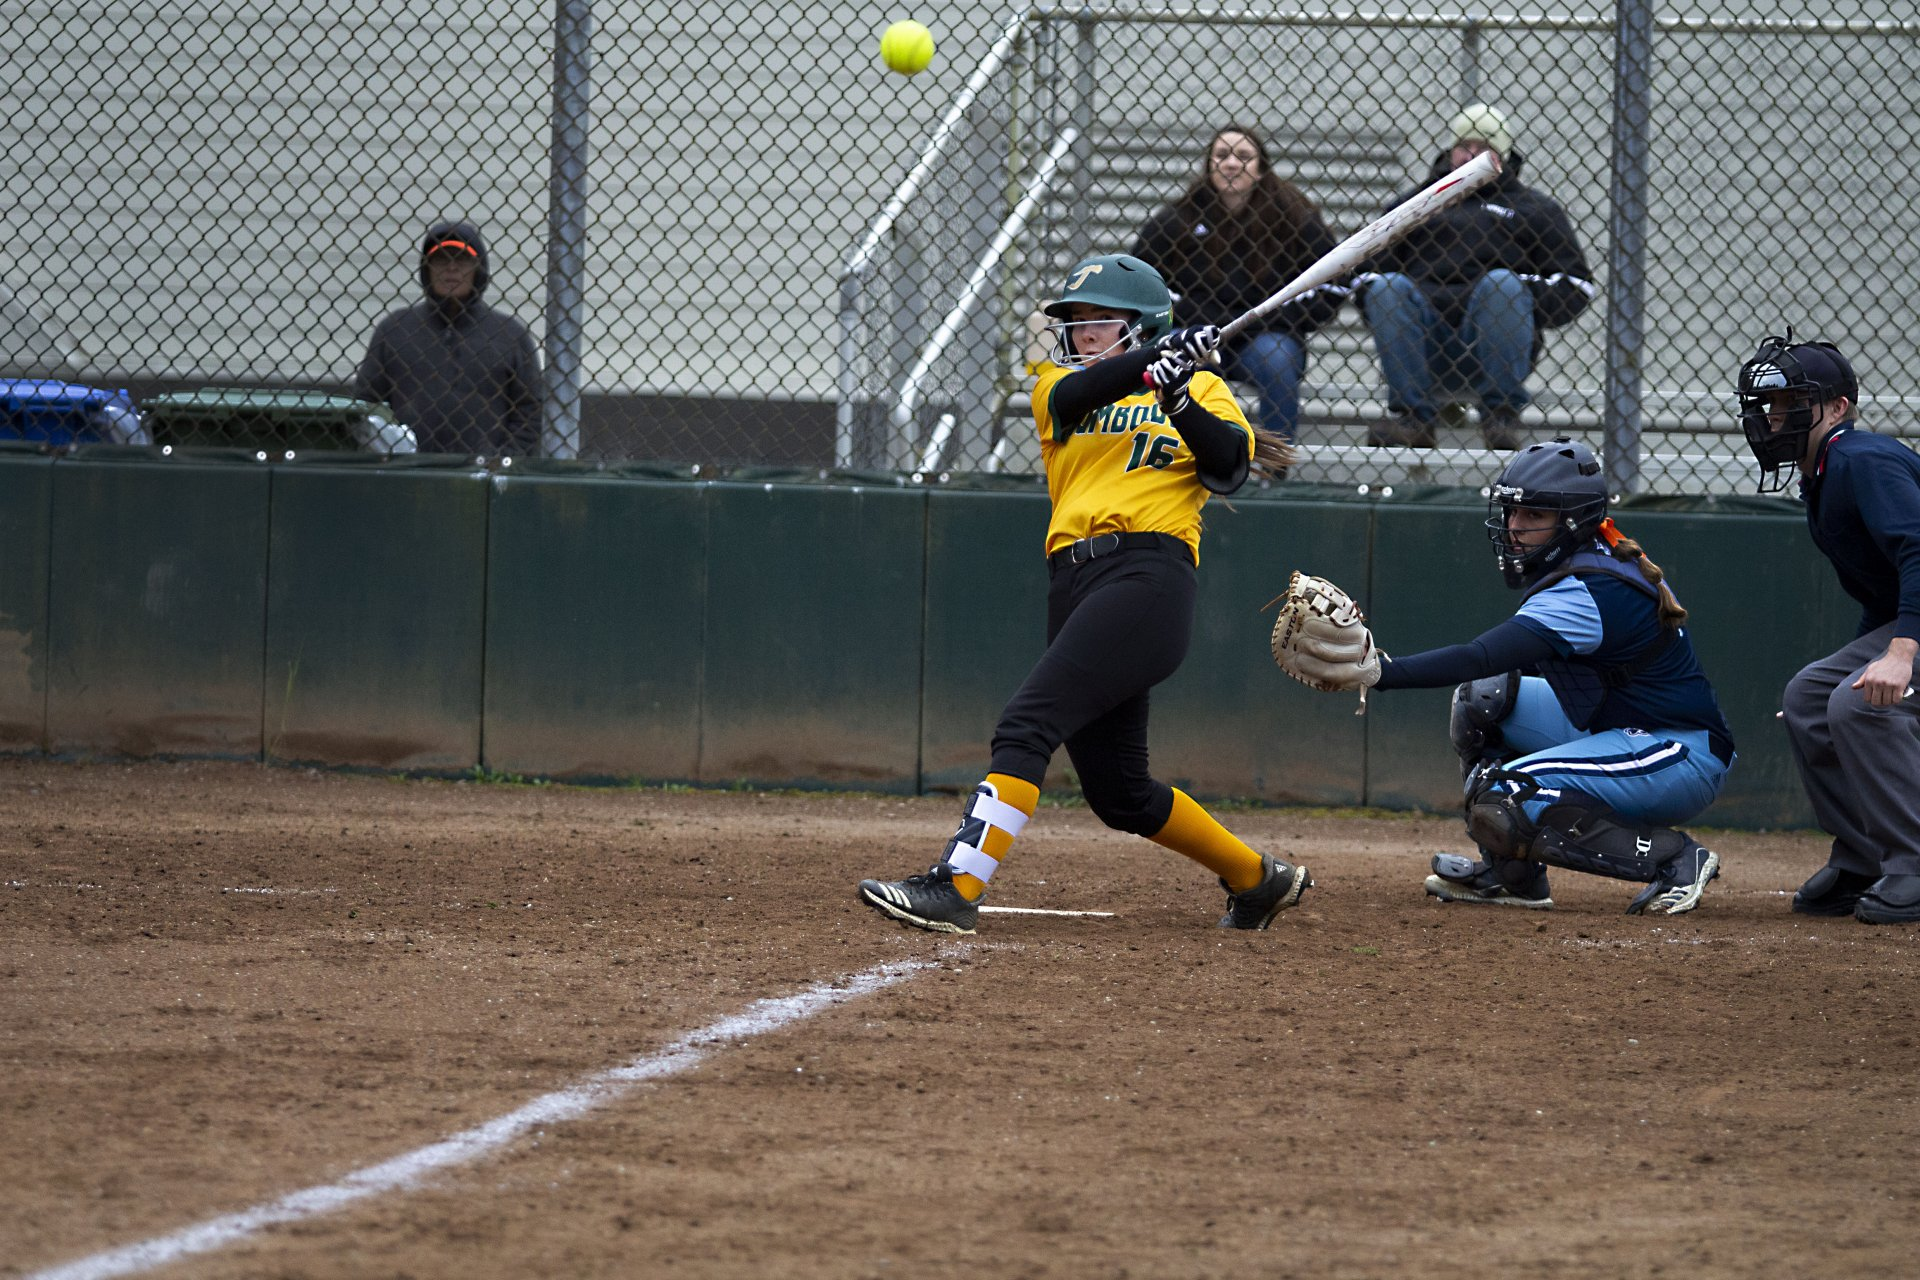 Humboldt State outfielder Katelyn Dendas makes contact with a pitch during the Lumberjacks game against Sonoma State on Feb. 28, 2020 at HSU Softball Field. | Photo by Thomas Lal